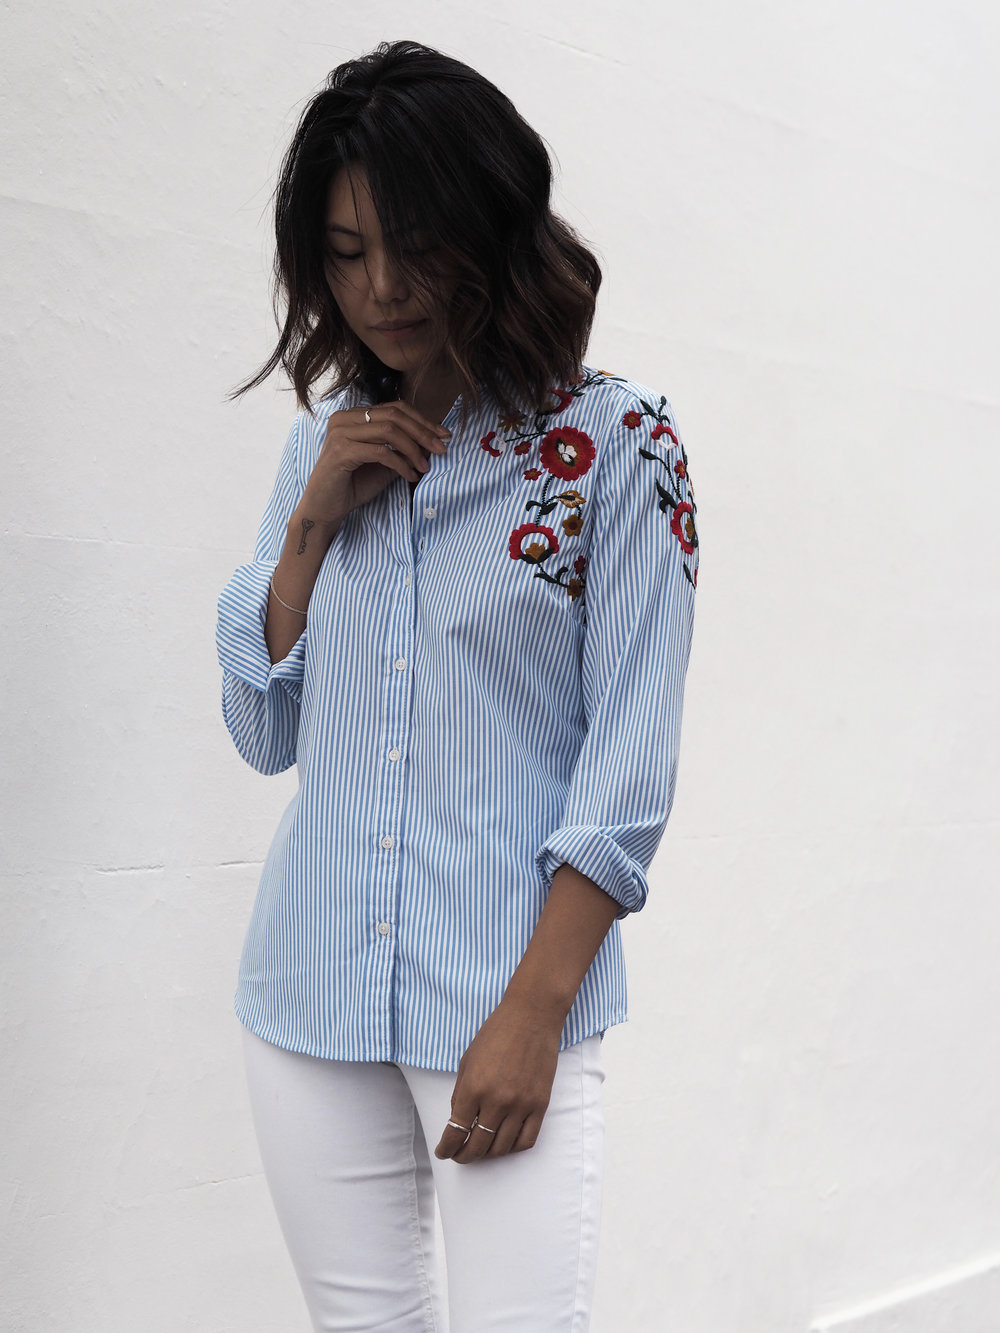 M&S-everywear-embroidered-Shirt2.jpg